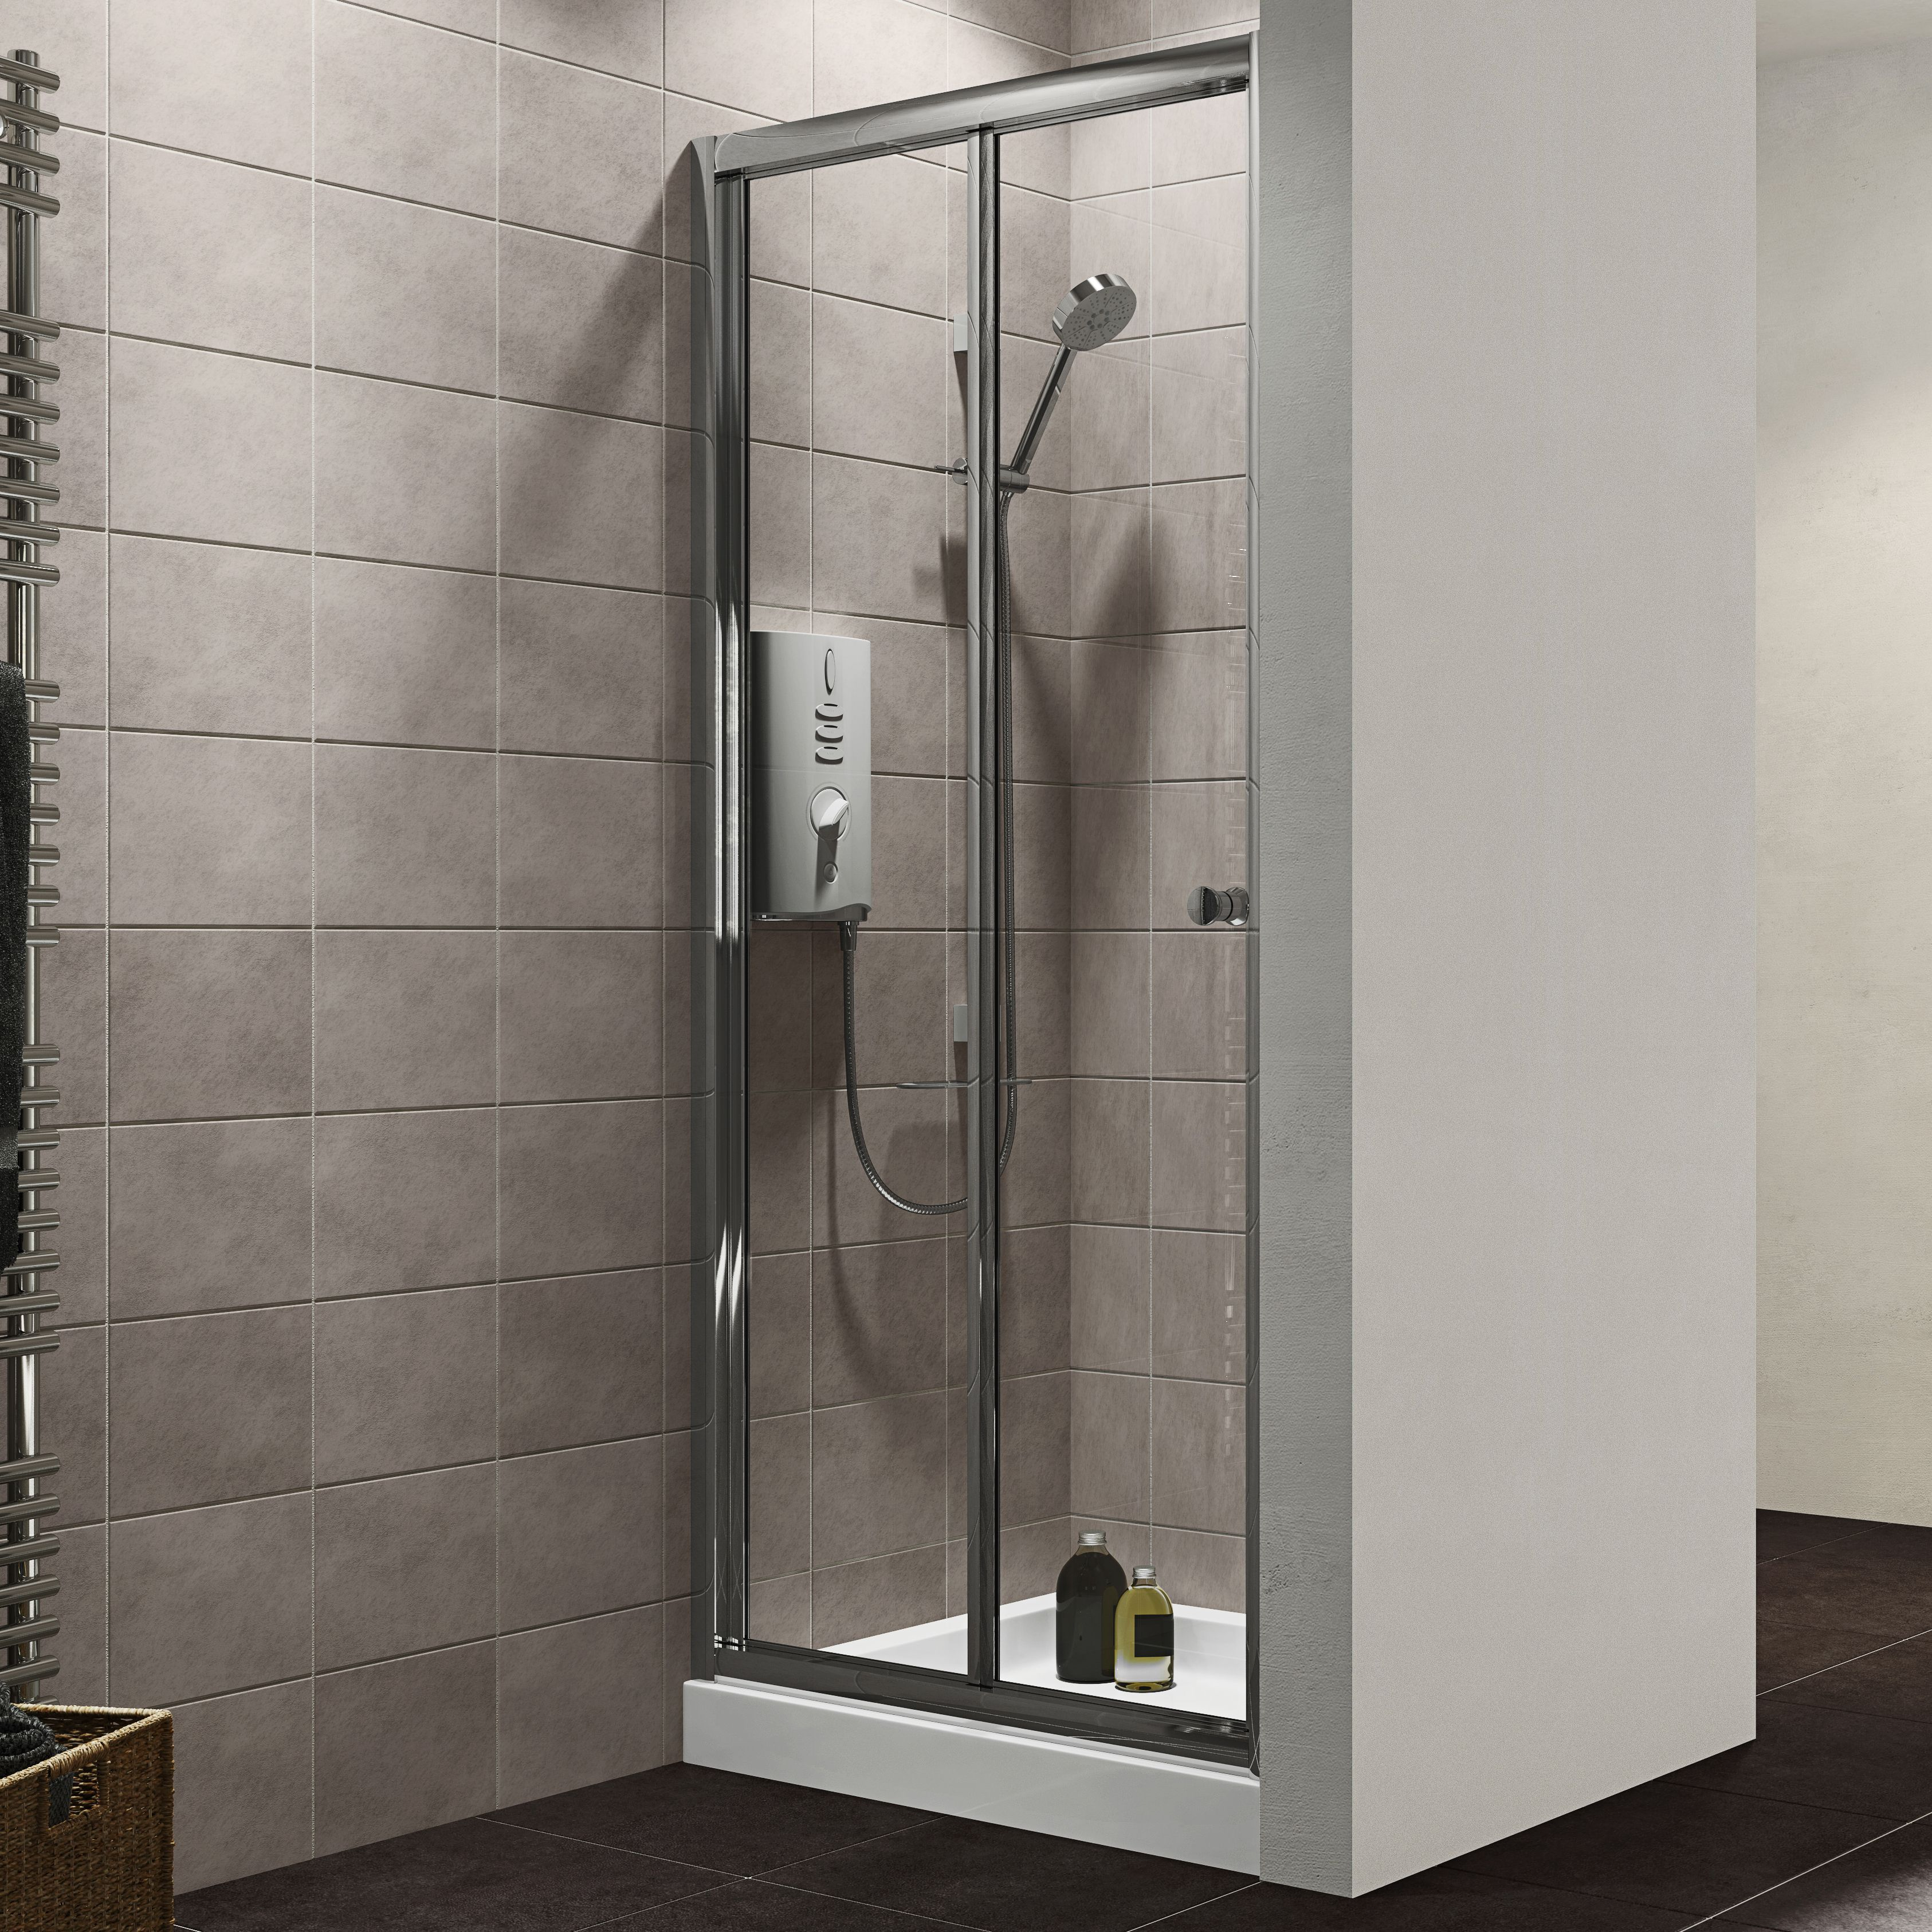 Bq It Kitchen Doors Plumbsure Bi Fold Shower Door W800mm Departments Diy At Bq